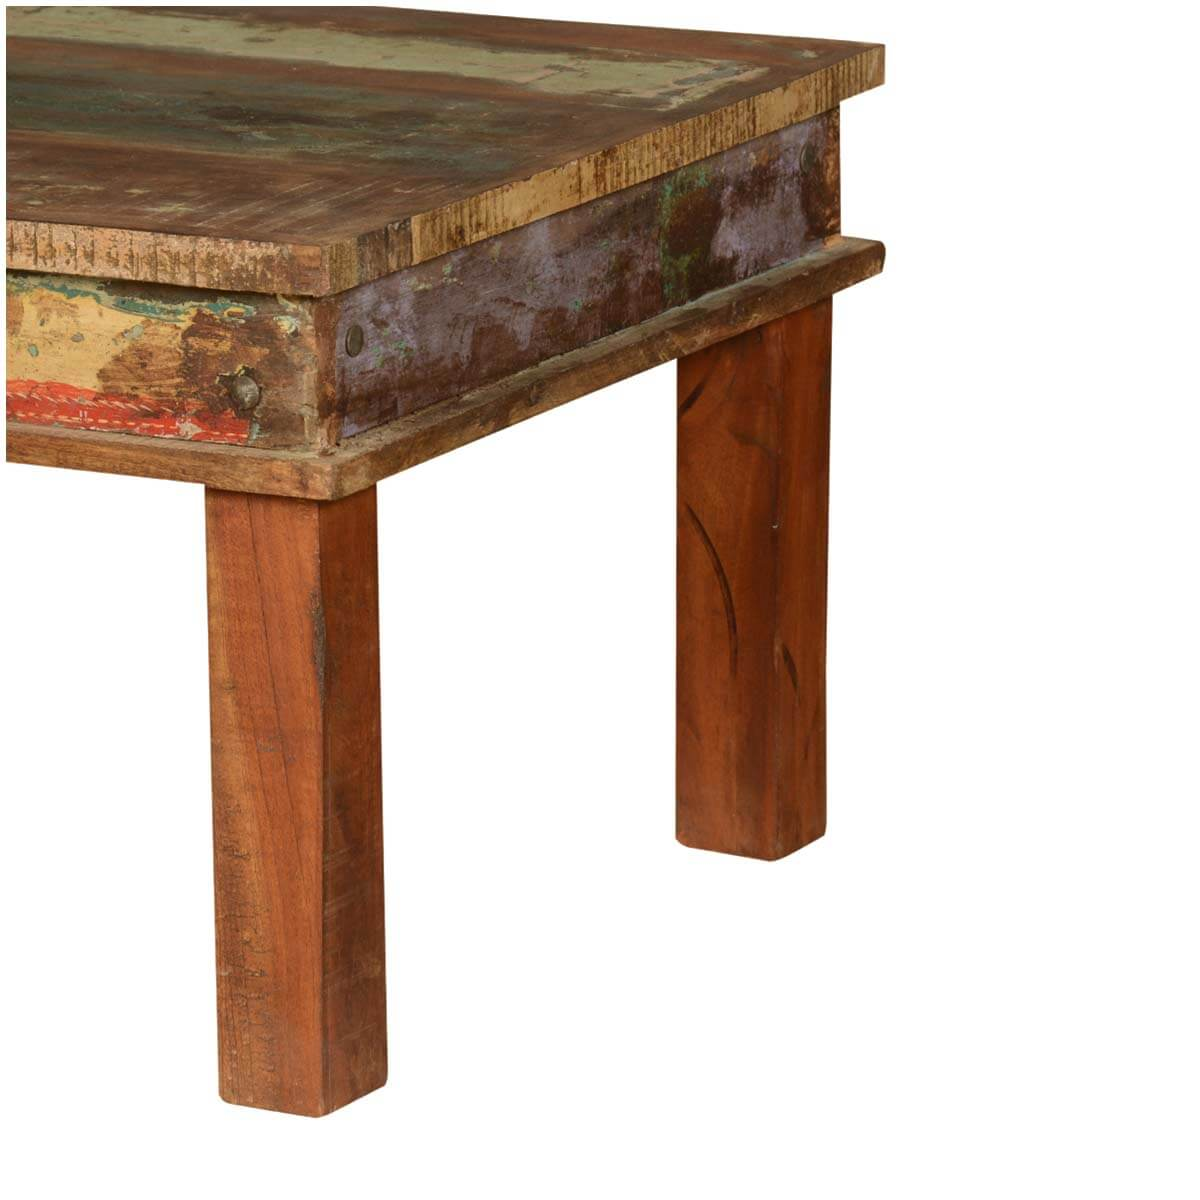 Large Distressed Wood Coffee Table: Appalachian Reclaimed Wood Multi-Color Coffee Table